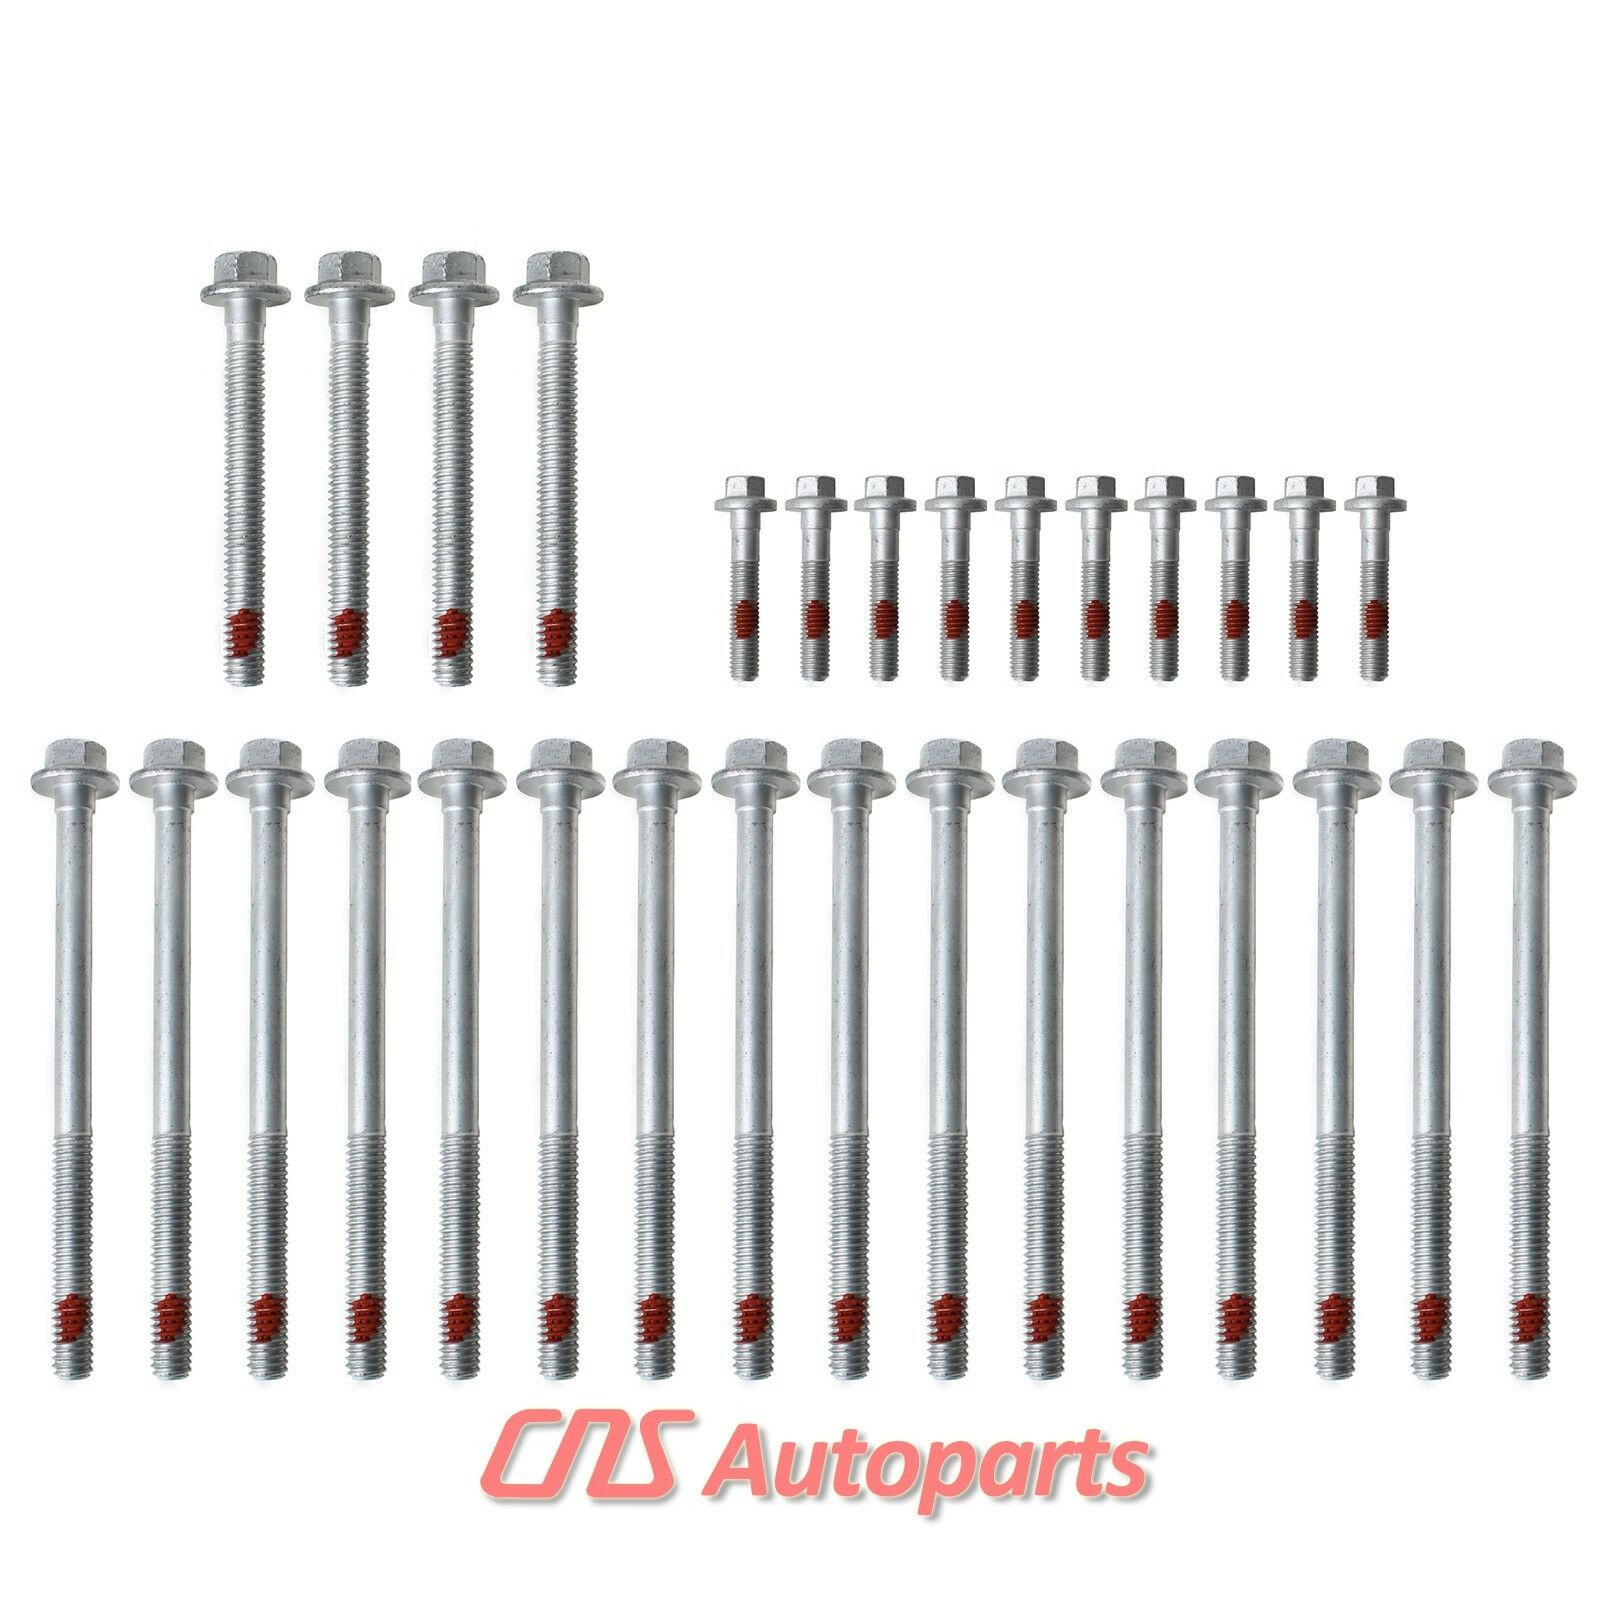 Cylinder Head Bolts Set: 1st Design Cylinder Head Bolt Set GM Chevrolet 4.8L 5.3L 5